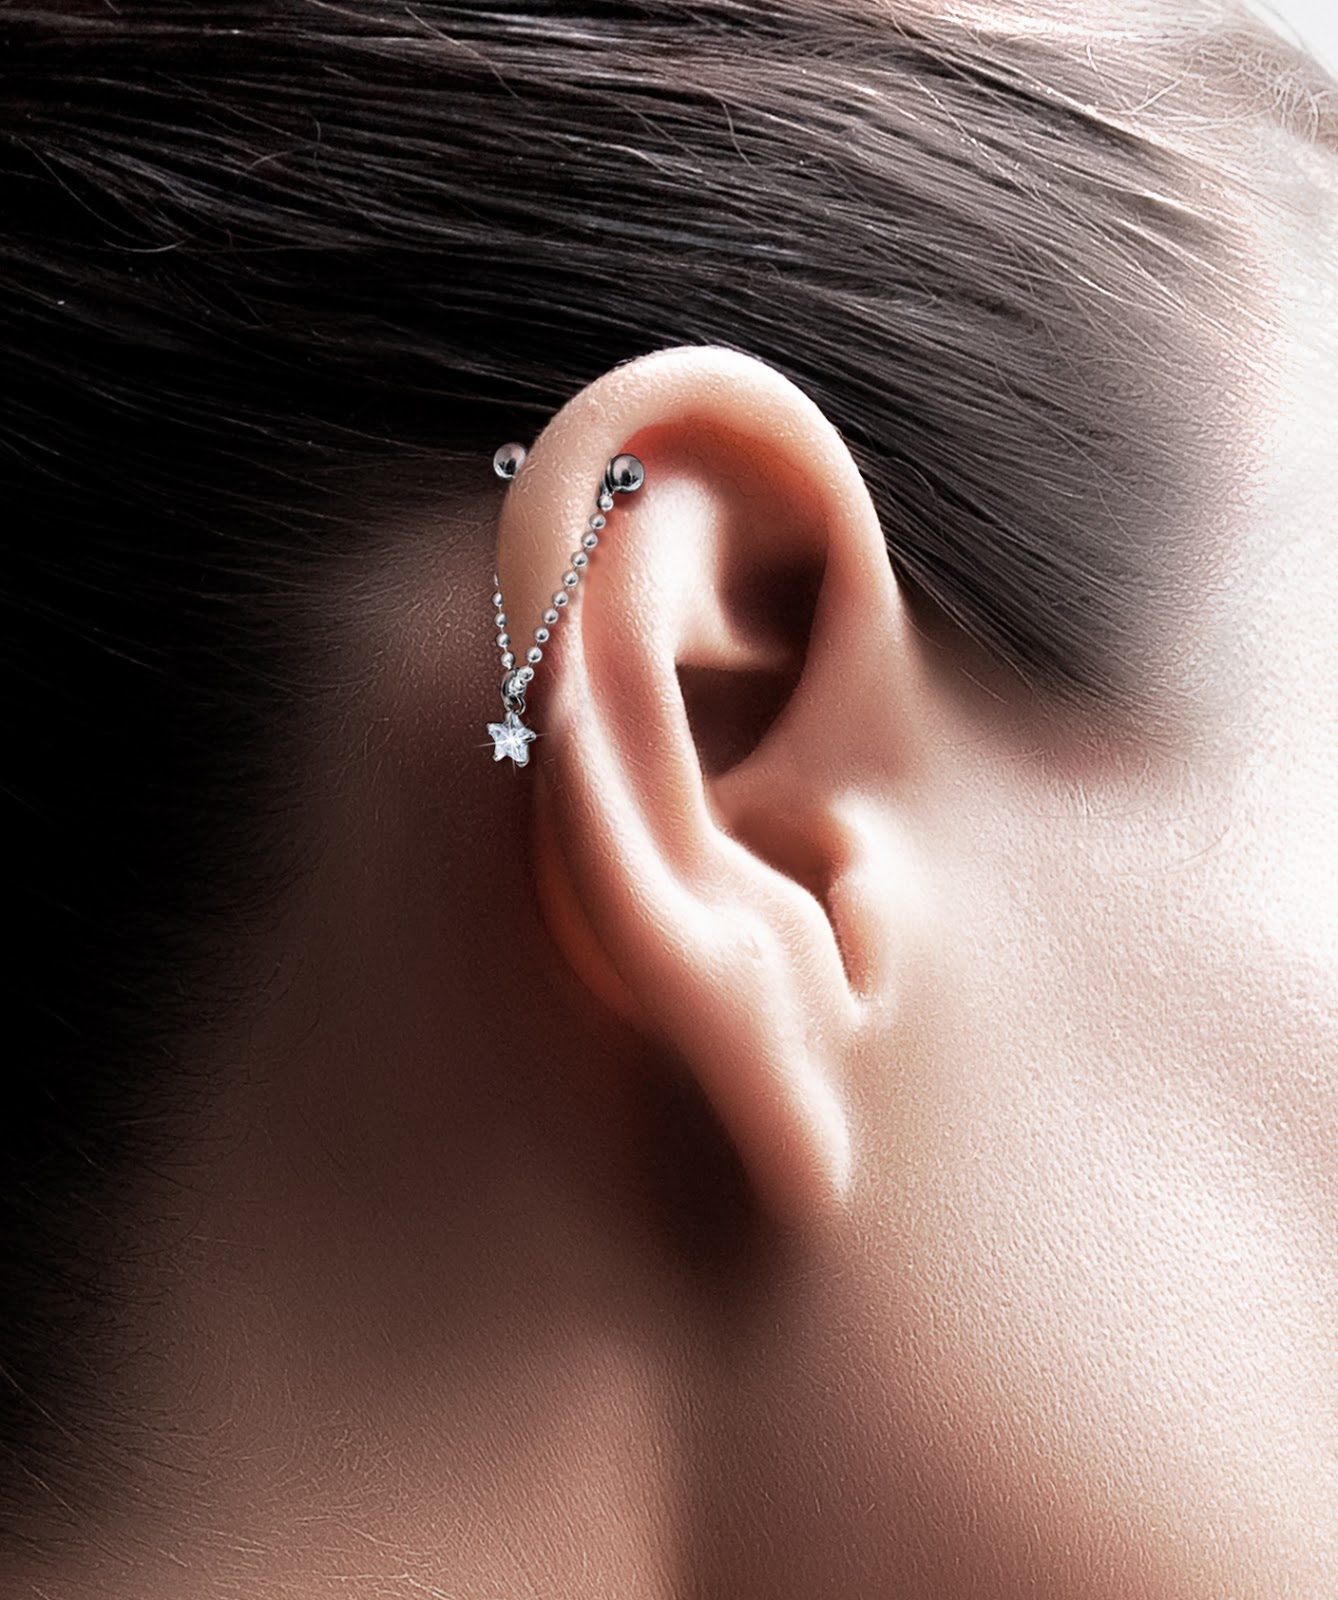 Upper Ear Piercing Chain Replace Your Traditional Bar Ear Piercing It Ear Piercing Jewelry